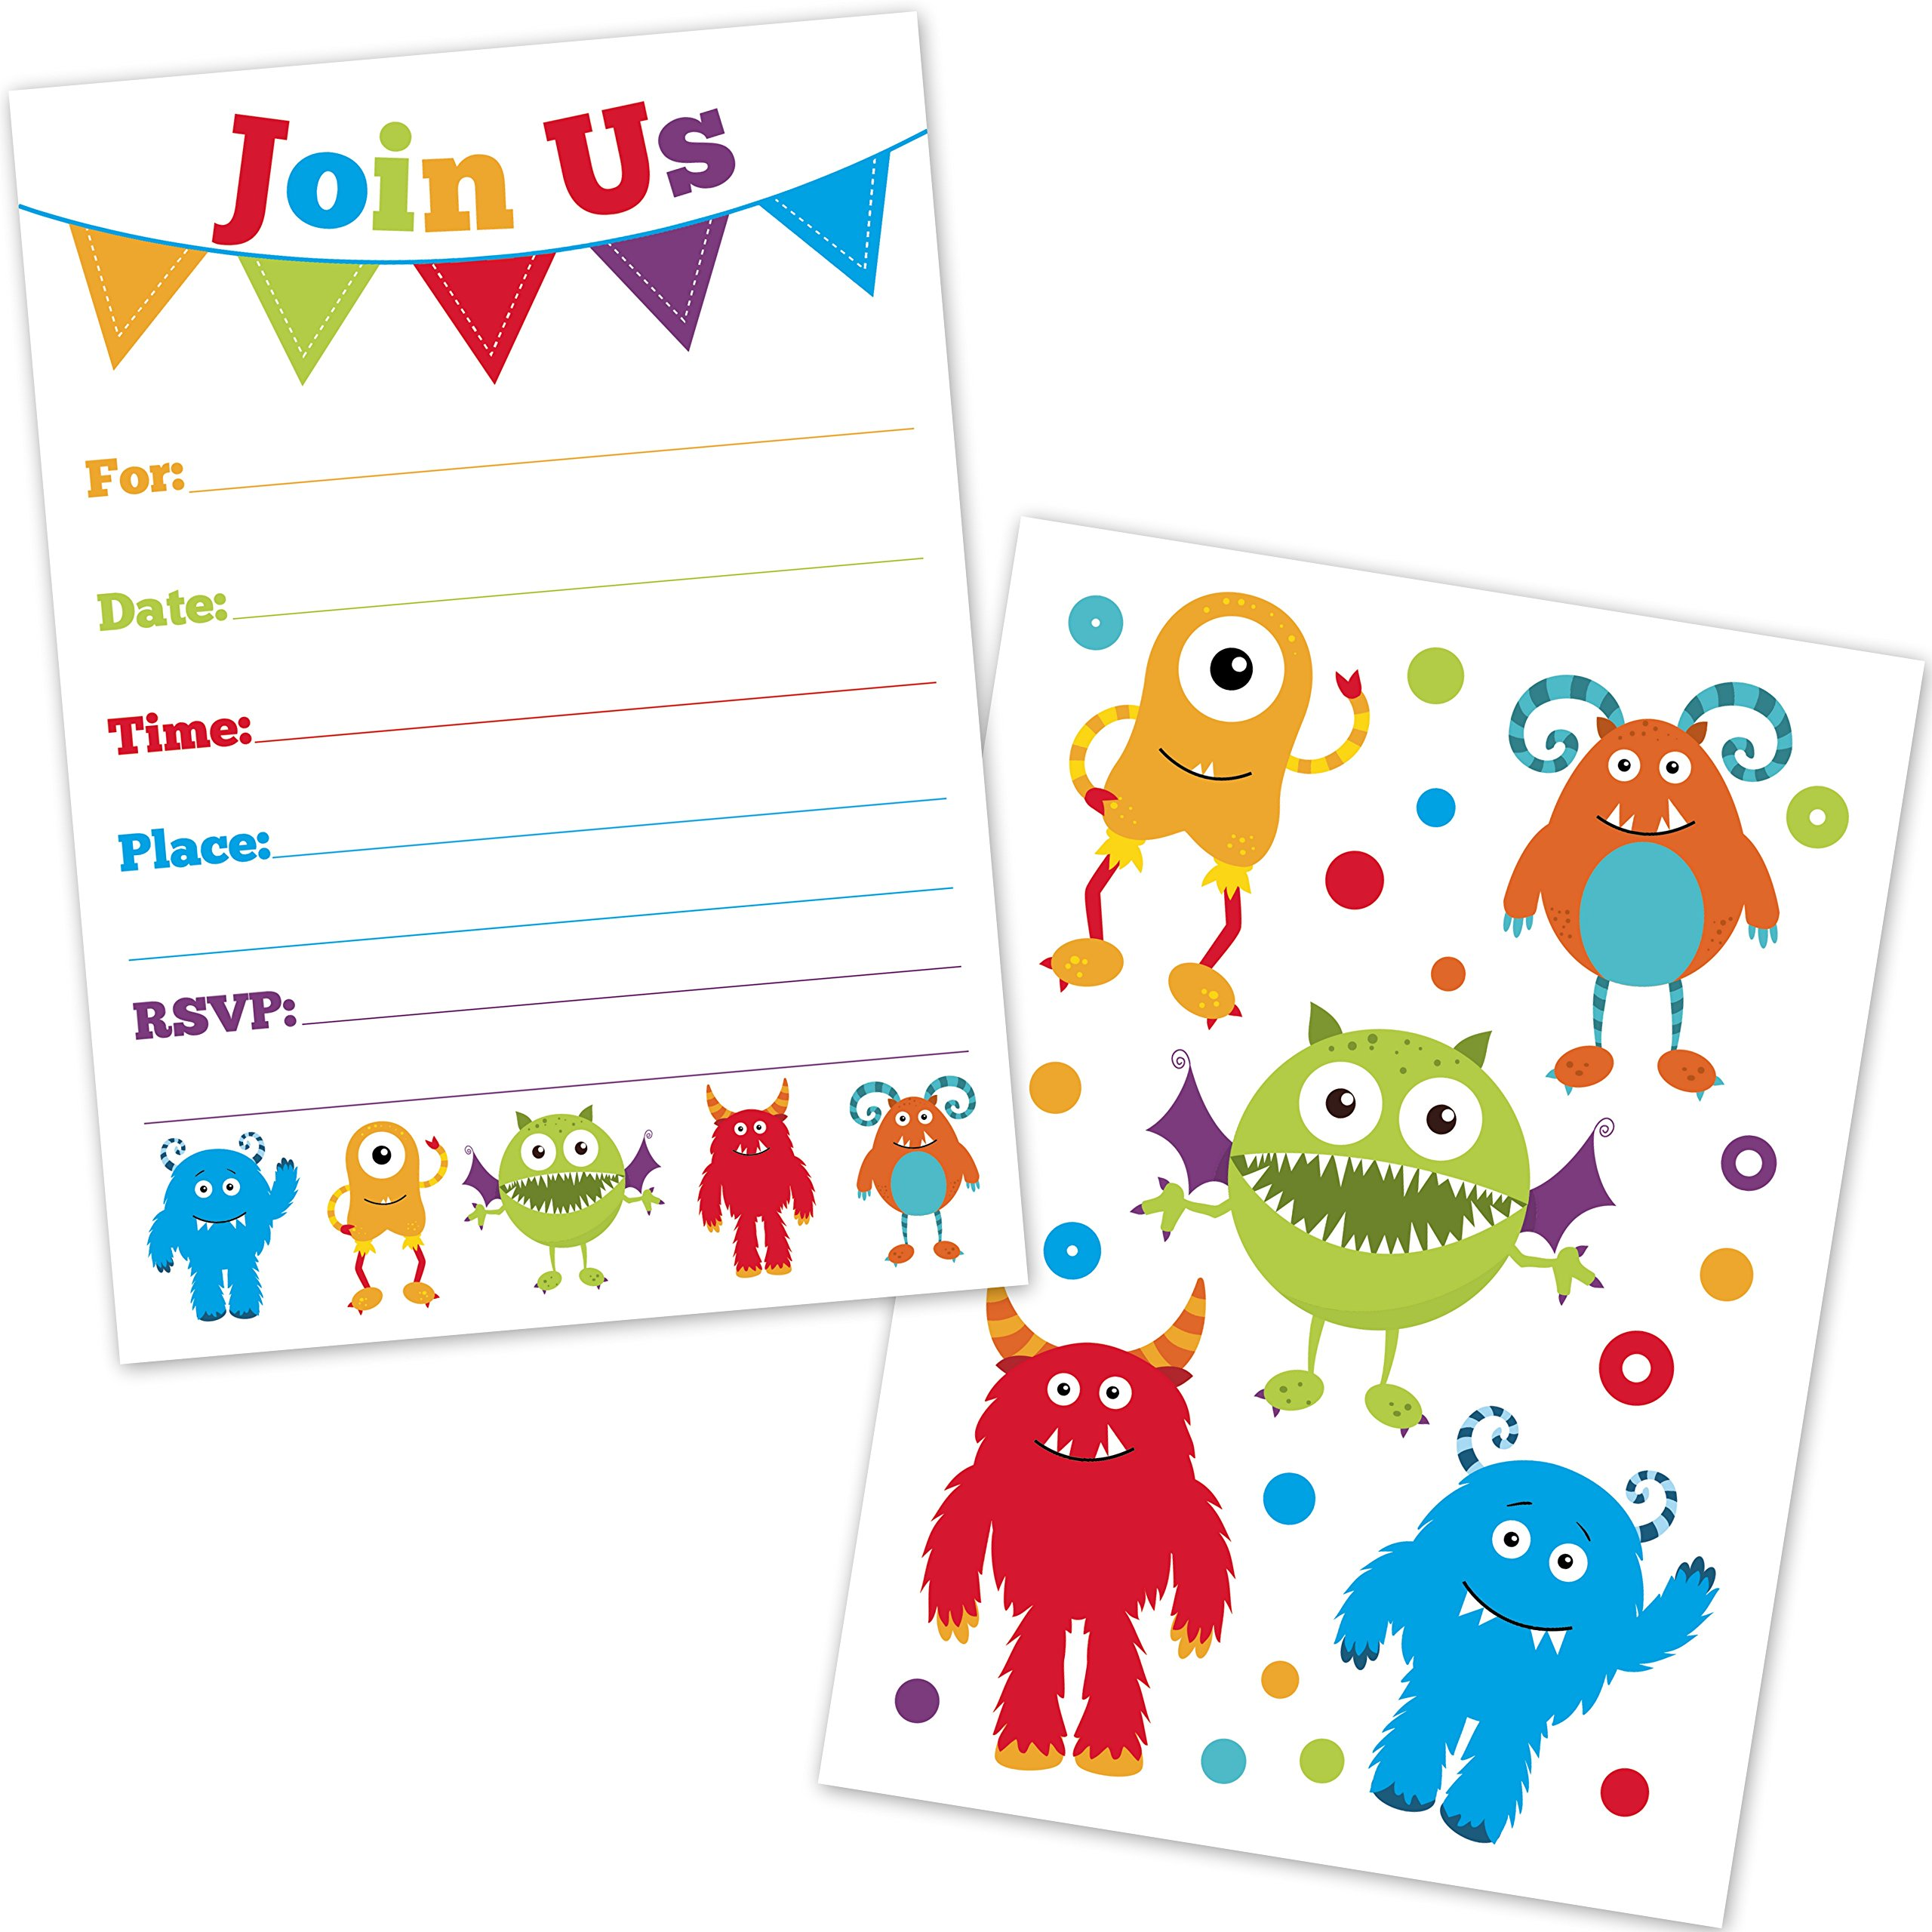 Cute Monster Birthday Party Invitations for Kids - (20 Count with Envelopes) - First Birthday Invites for Boys and Girls - Monster Party Supplies by Old Blue Door Invites (Image #1)